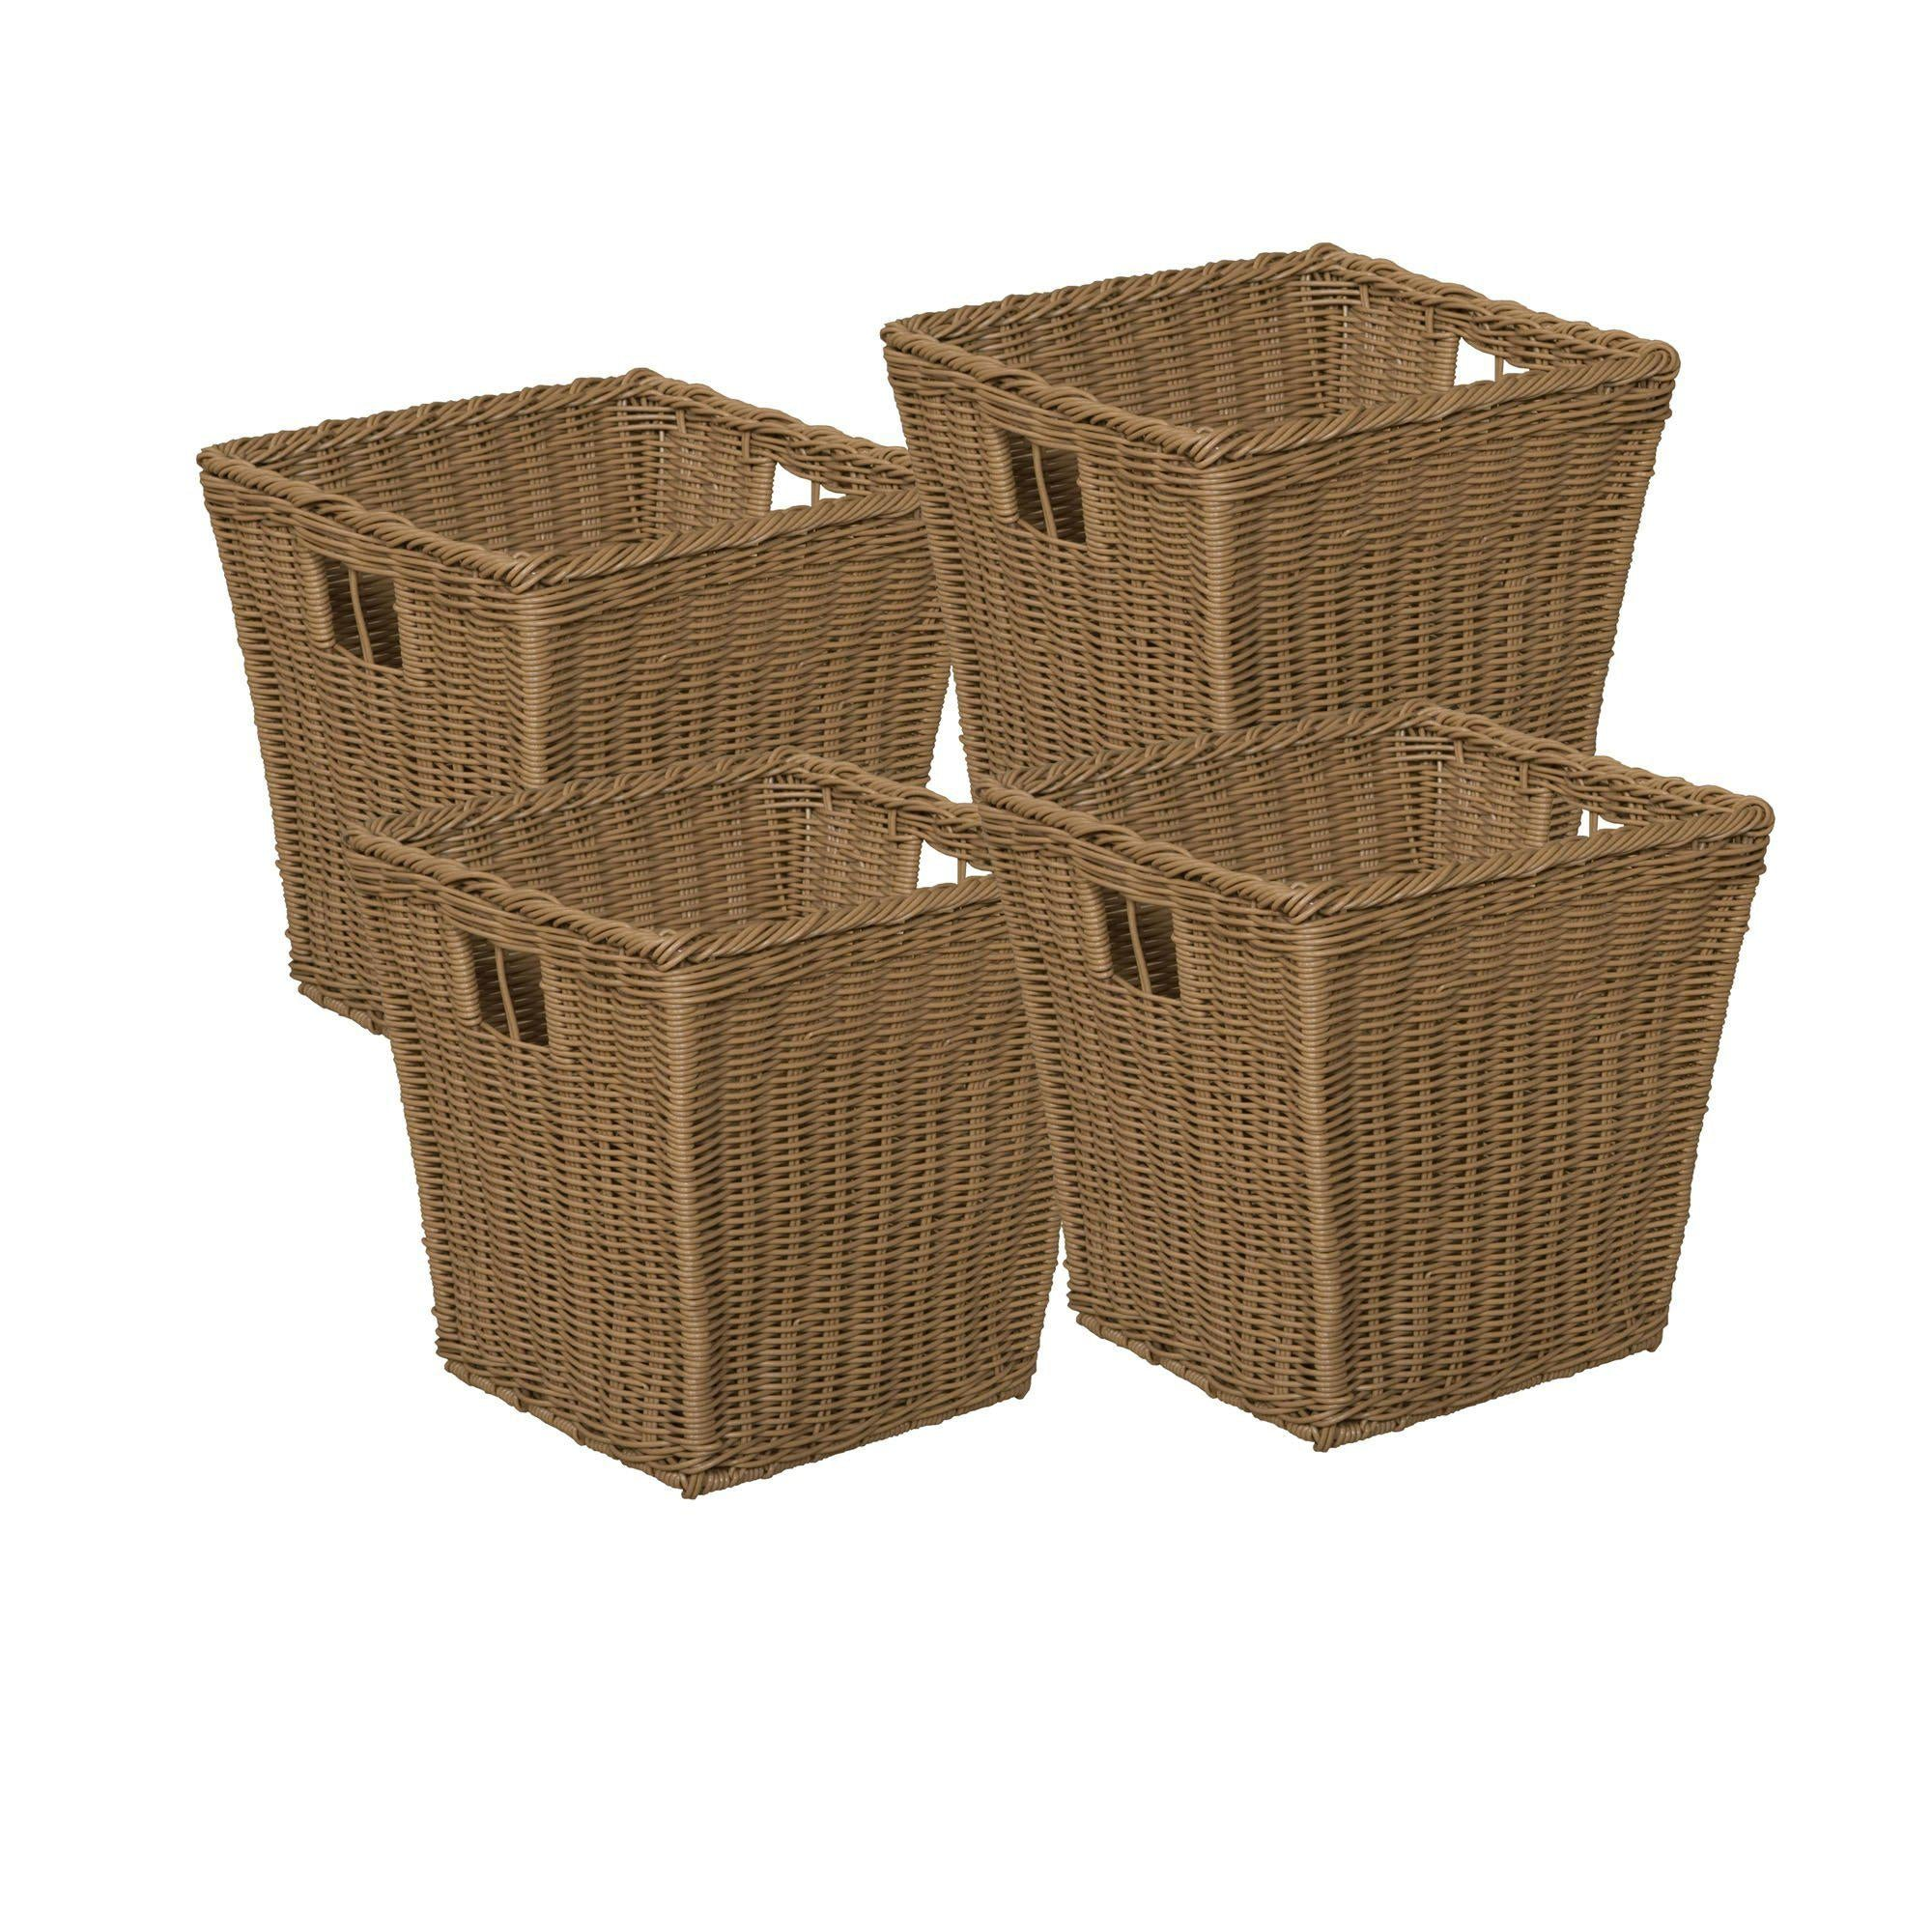 Medium Basket-Set of 4